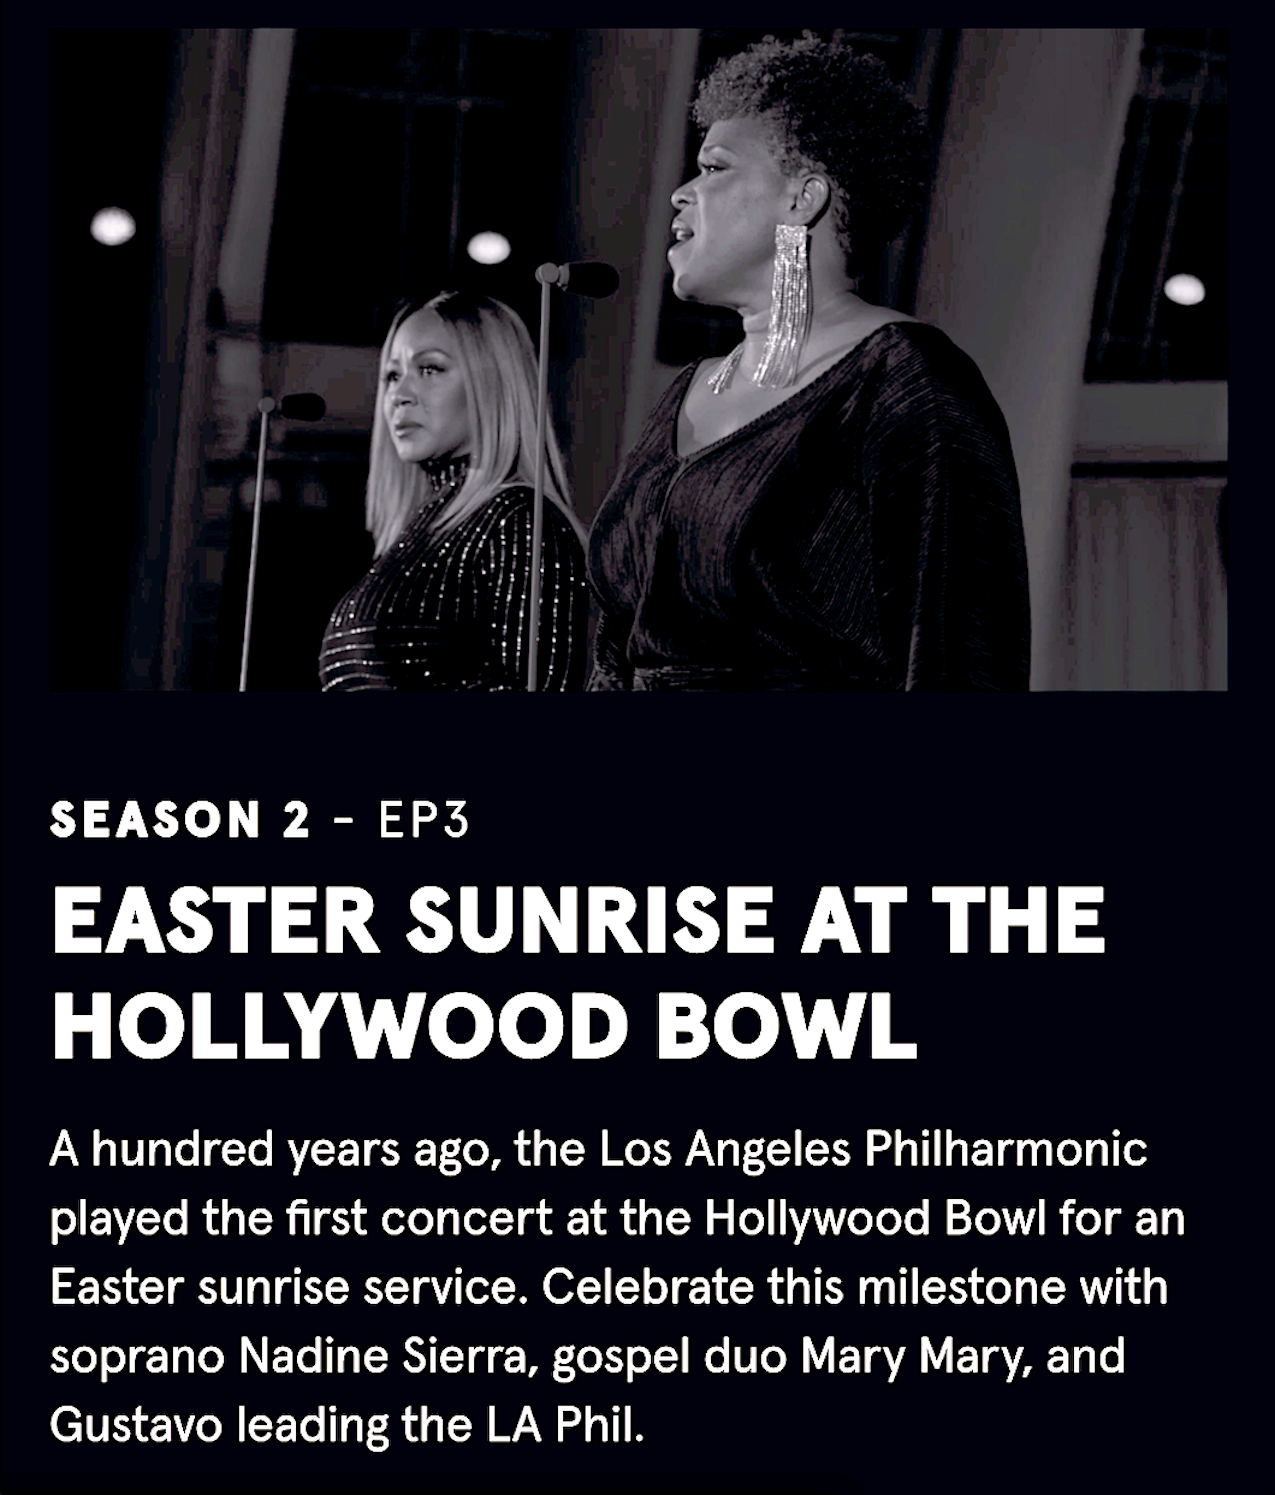 LA Phil SOUND/STAGE Season 2 Episode 3 — Easter Sunrise at the Hollywood Bowl